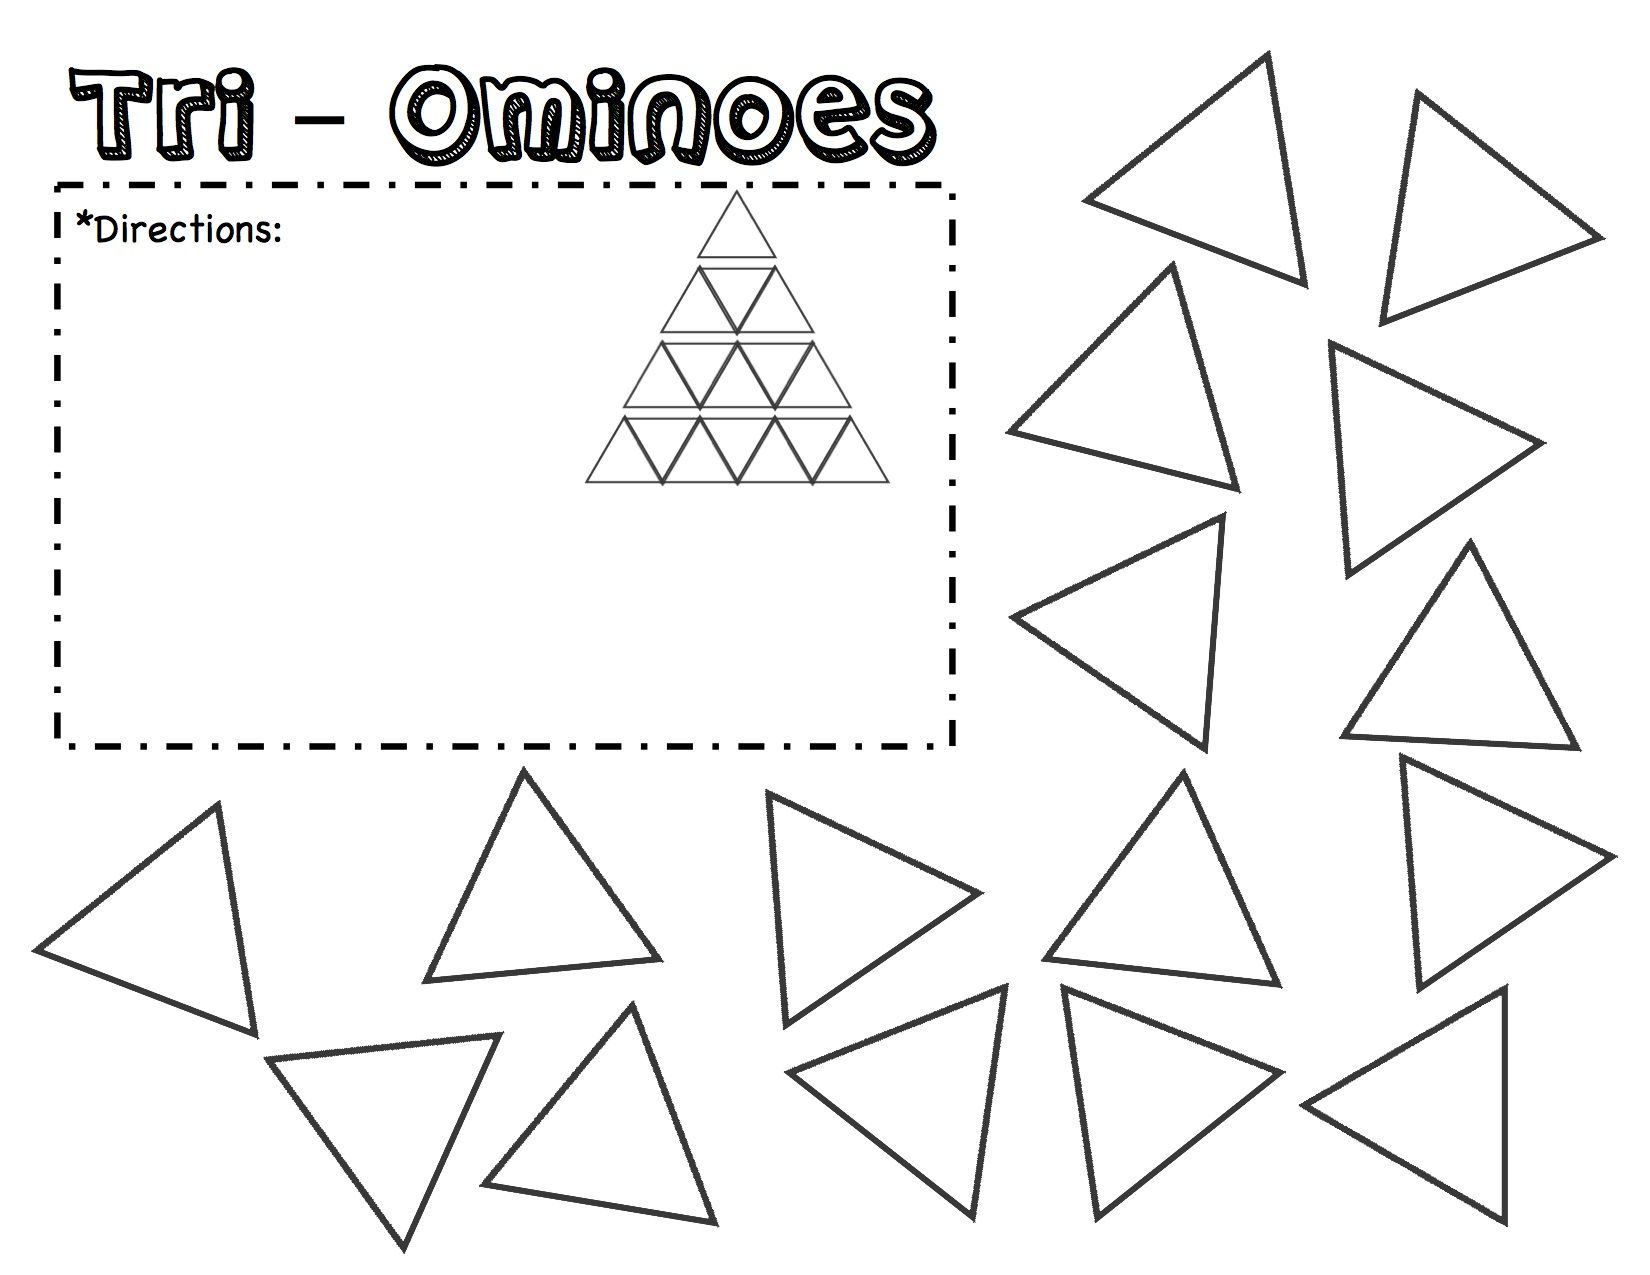 tri ominoes puzzle template printable fill in the directions and